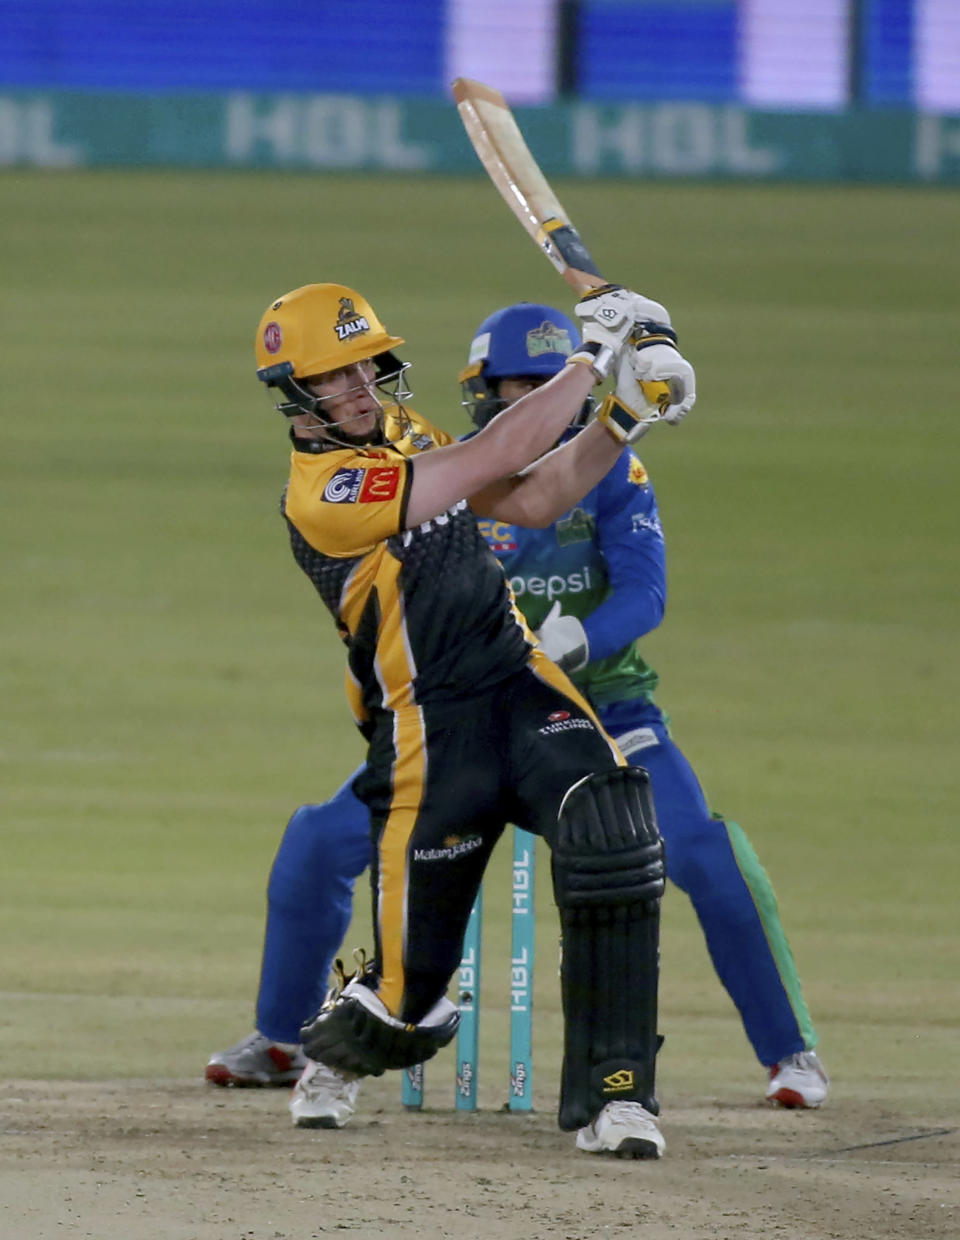 Peshawar Zalmi Tom Kohler Cadmore follows the ball after playing a shot for boundary during a Pakistan Super League T20 cricket match between Multan Sultans and Peshawar Zalmi at the National Stadium, in Karachi, Pakistan, Tuesday, Feb. 23, 2021. (AP Photo/Fareed Khan)